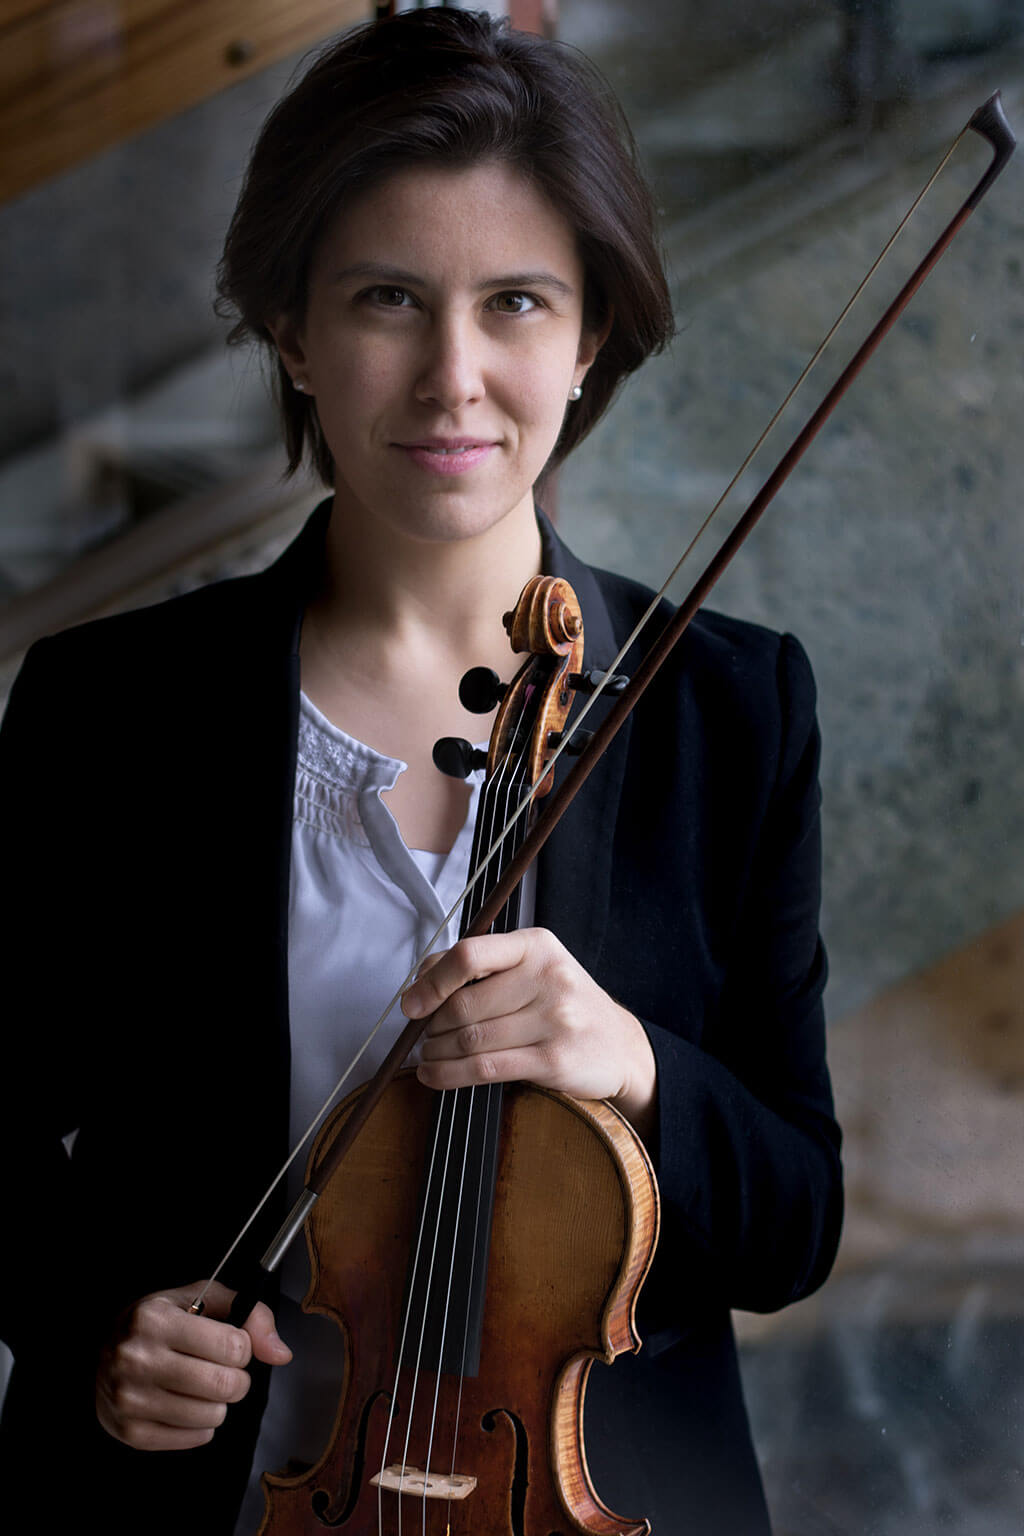 La violoniste Marie Bégin. (Photo: courtoisie)